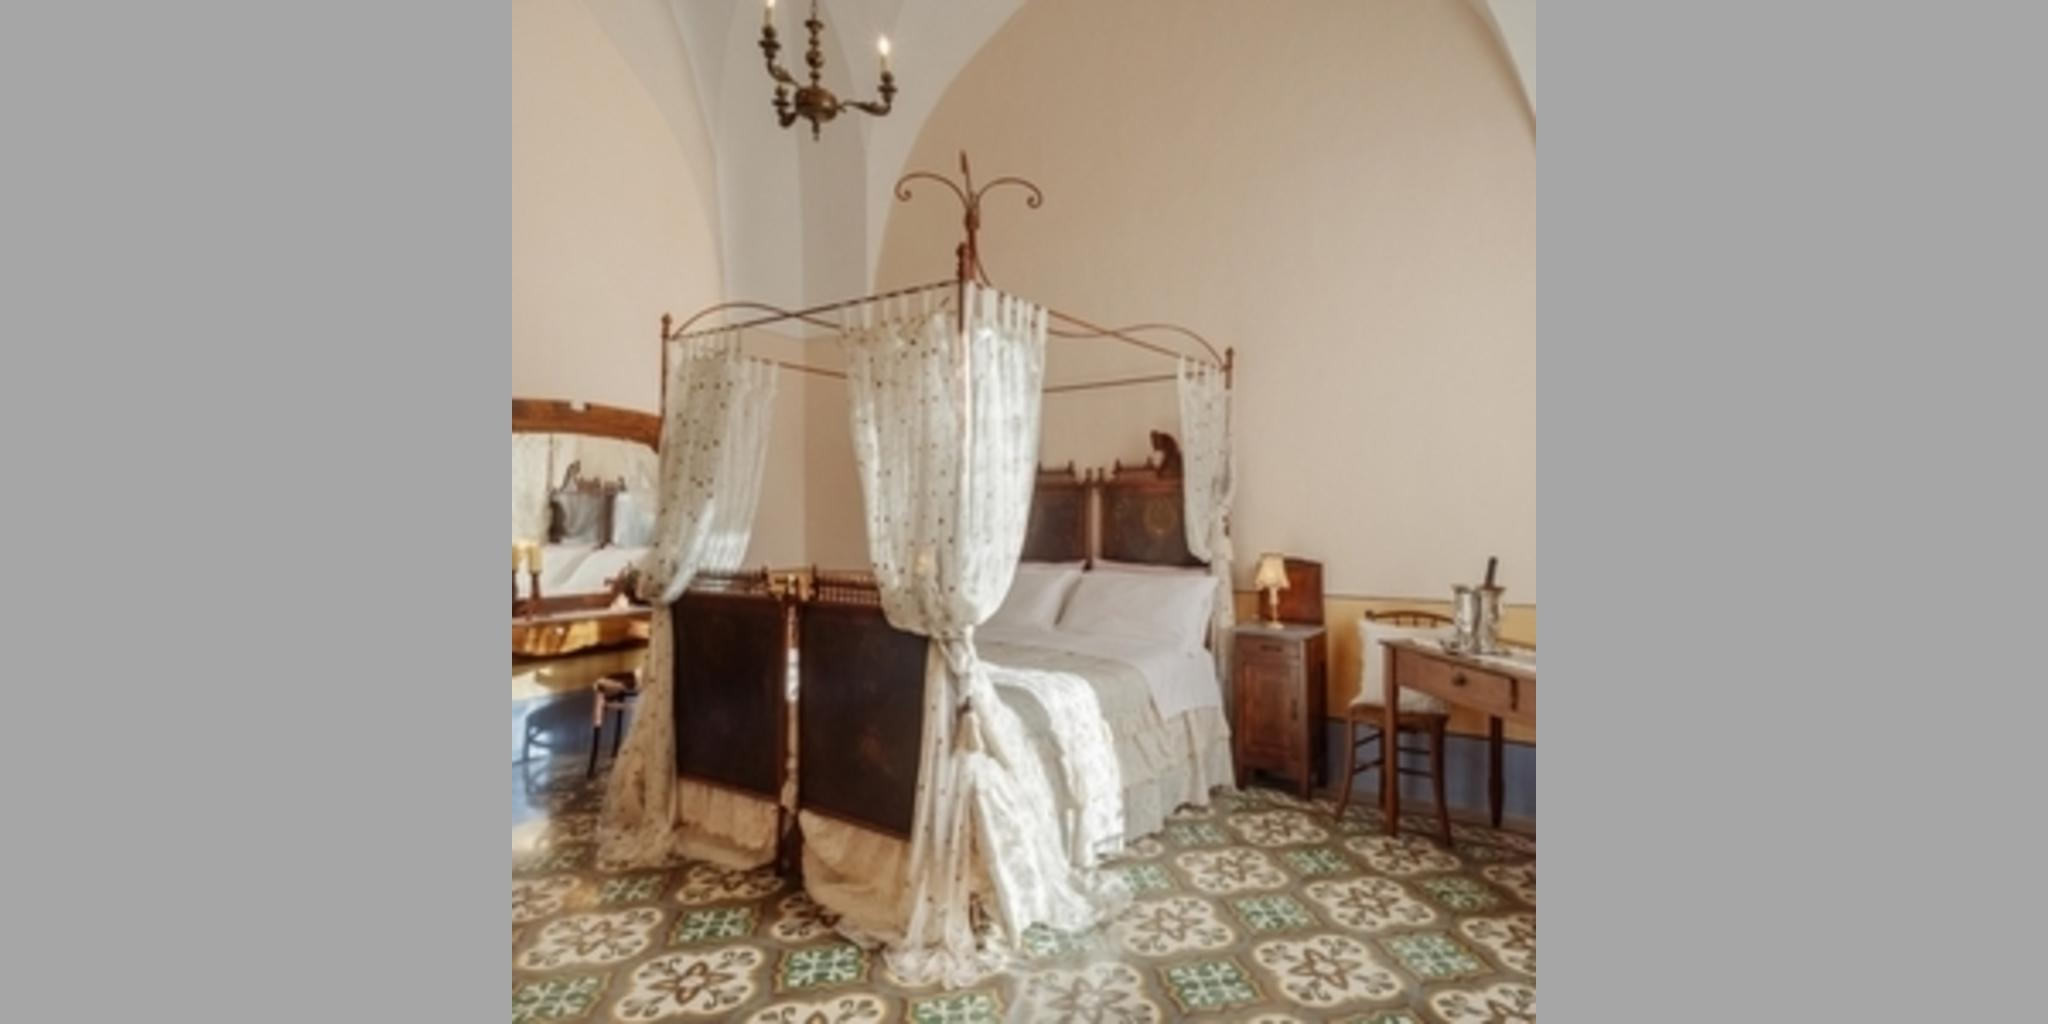 Bed & Breakfast Martano - Grecia Salentina